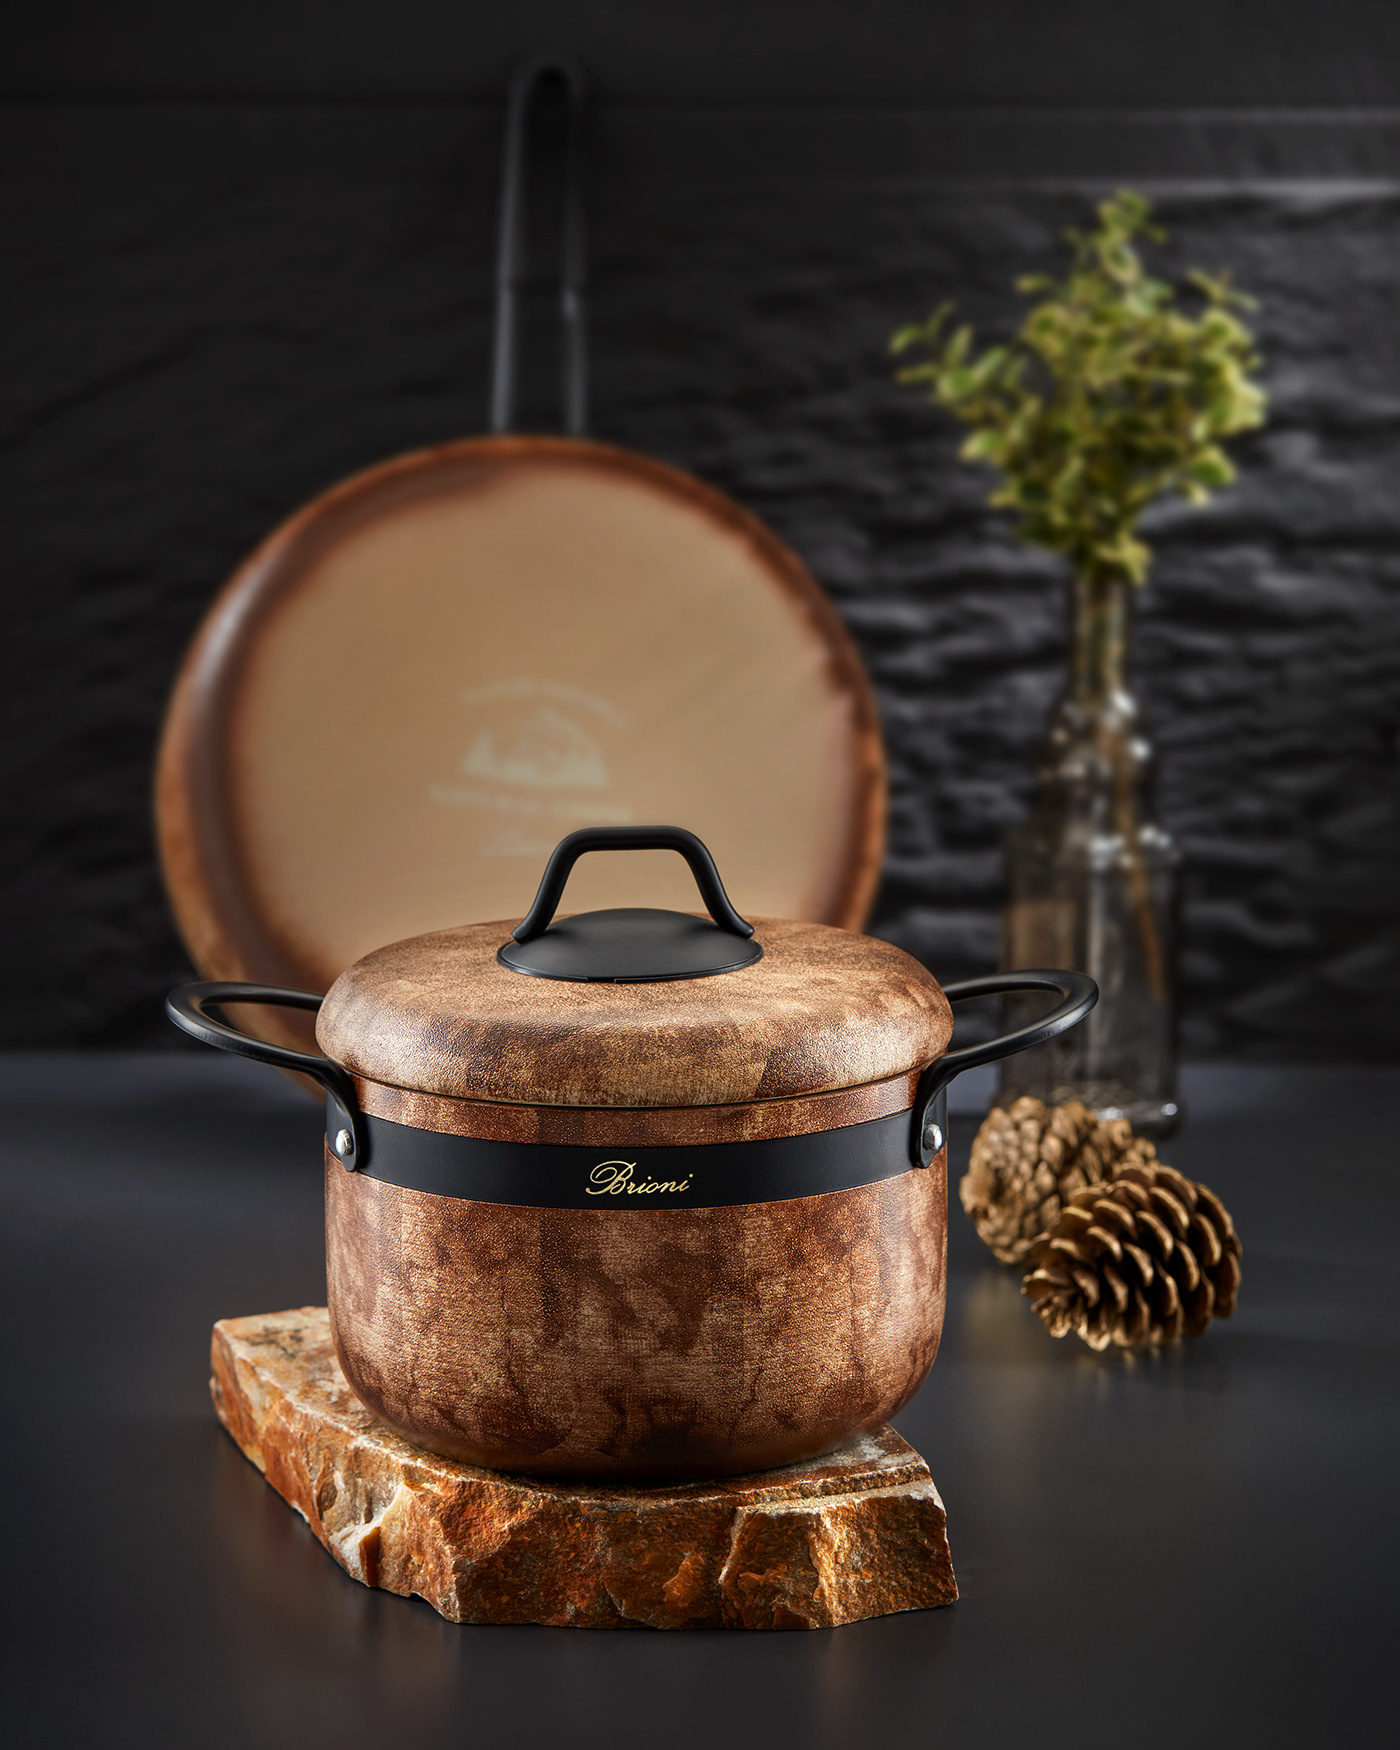 Advertising  Brioni commercial kitchen KITCHENWARE product